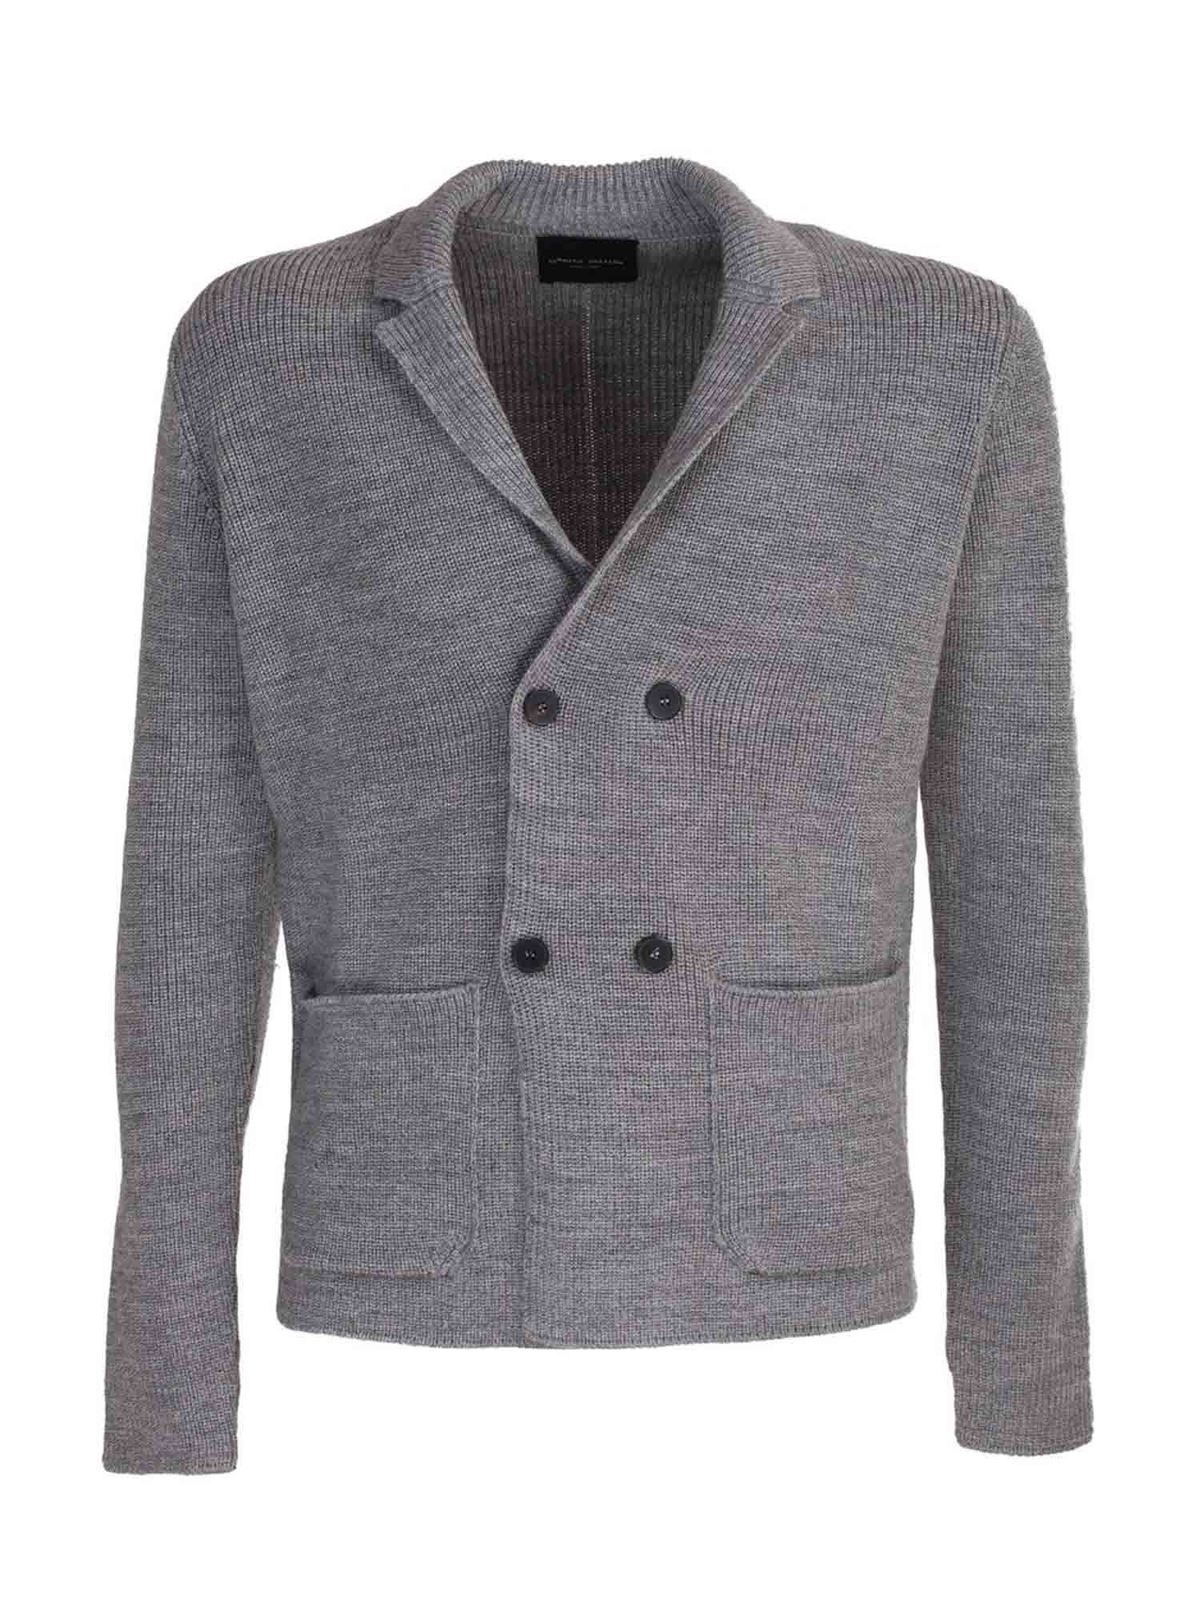 Roberto Collina DOUBLE-BREASTED KNITTED JACKET IN GREY